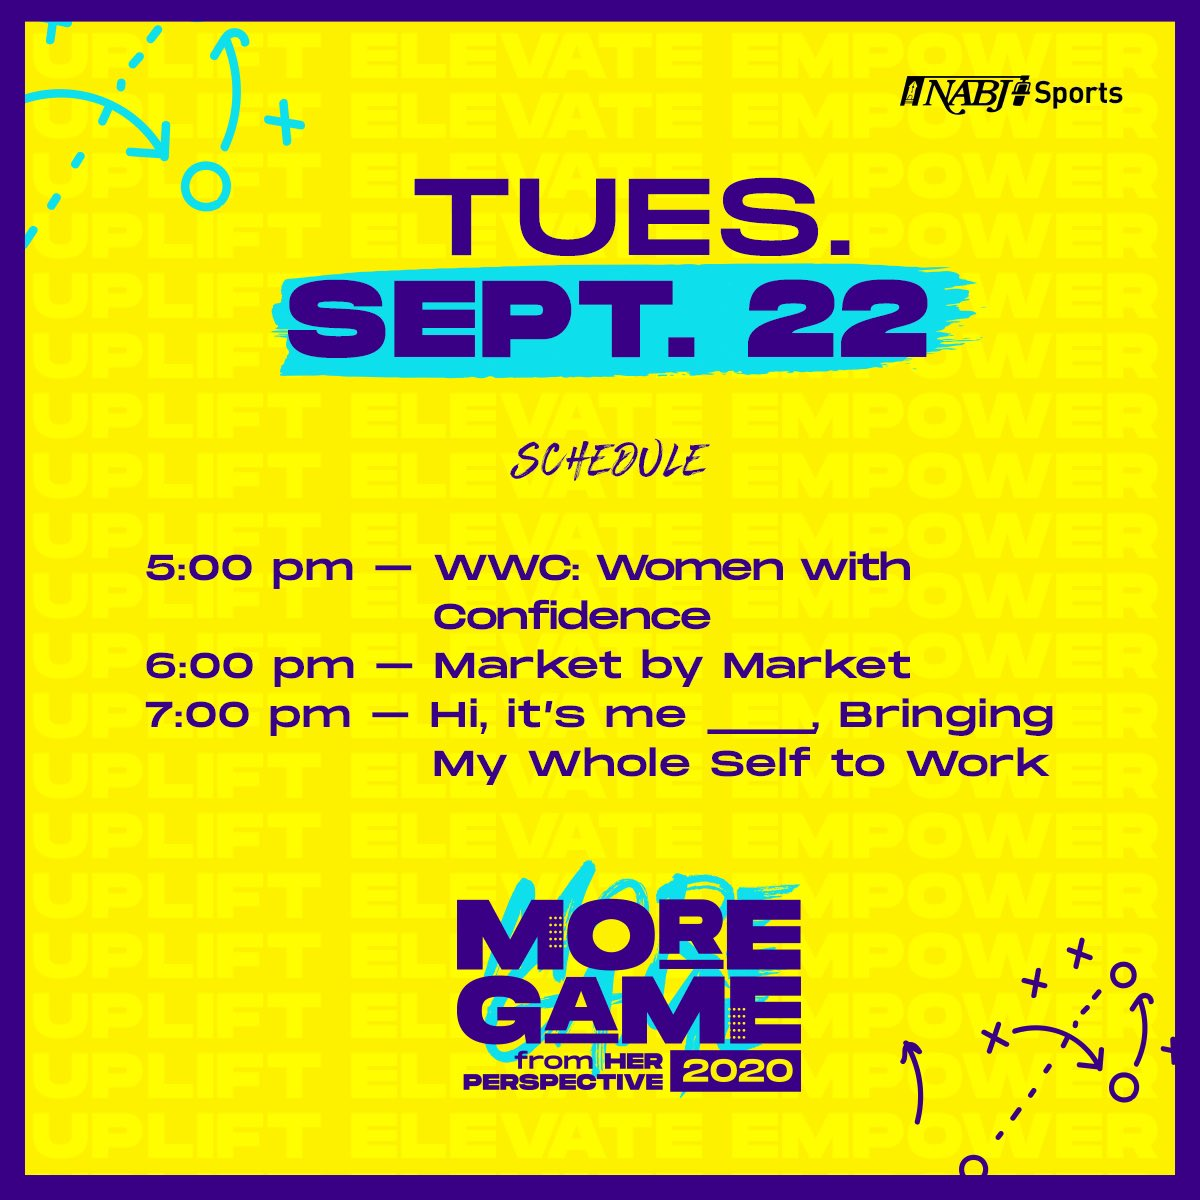 Good morning!!!! We are keeping the  celebration of women going TONIGHT for our #MorethanagameforHER conference!!! 🔥😎  Going UP on a Tuesday!!! You are still able to register for today's panels until 3pm EST! Click the link 👇🏾👇🏾  https://t.co/l2nMIUDmJS https://t.co/cqaNEwM96Q